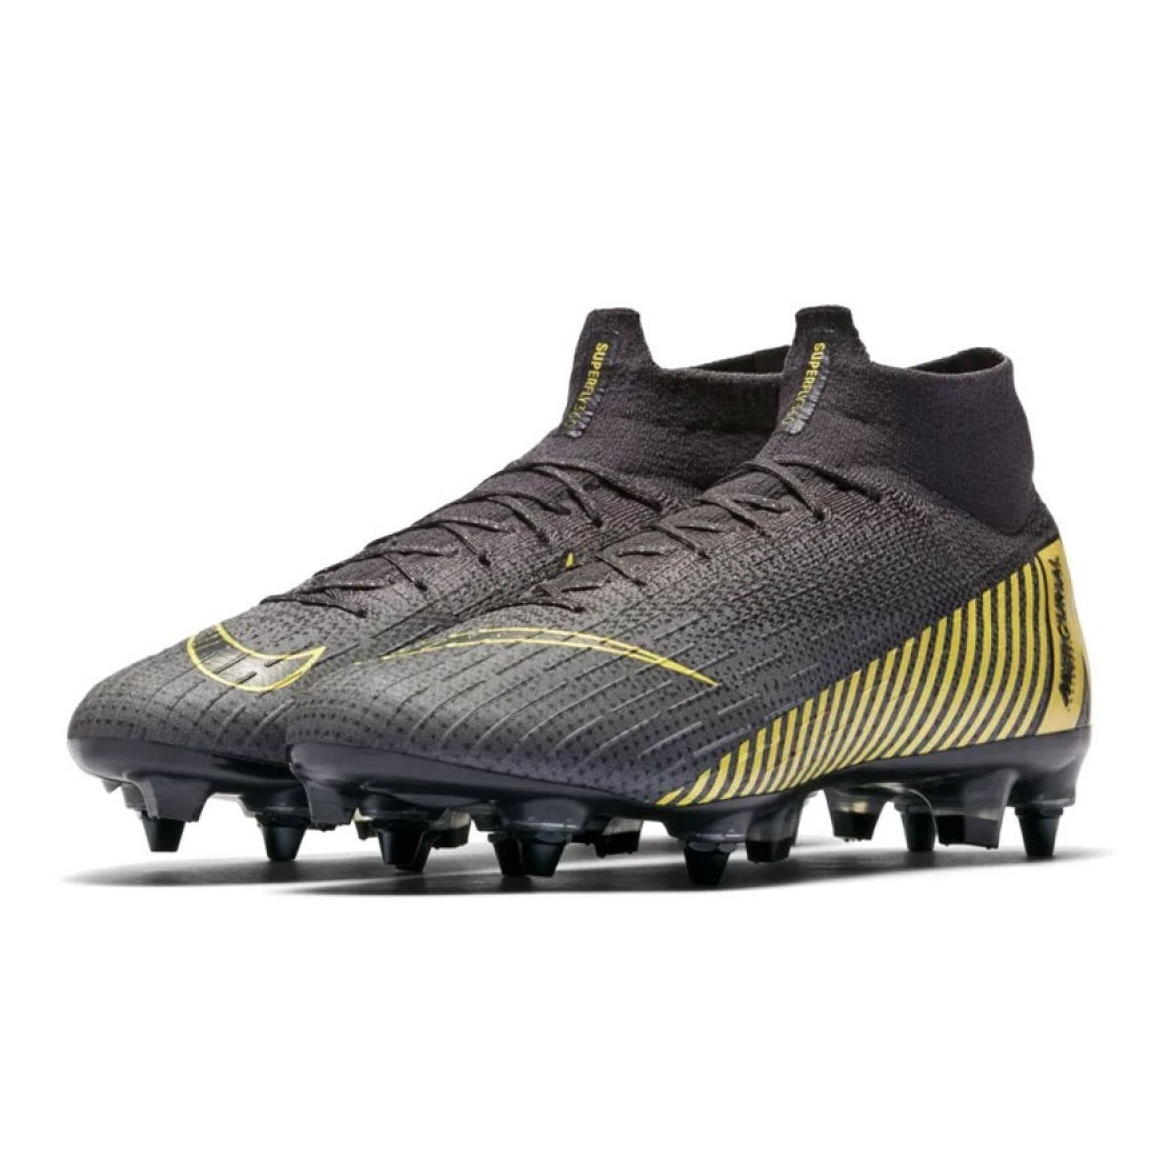 the best attitude 4d01e 1bced Football shoes Nike Mercurial Superfly 6 Elite SG-Pro M AH7366-070